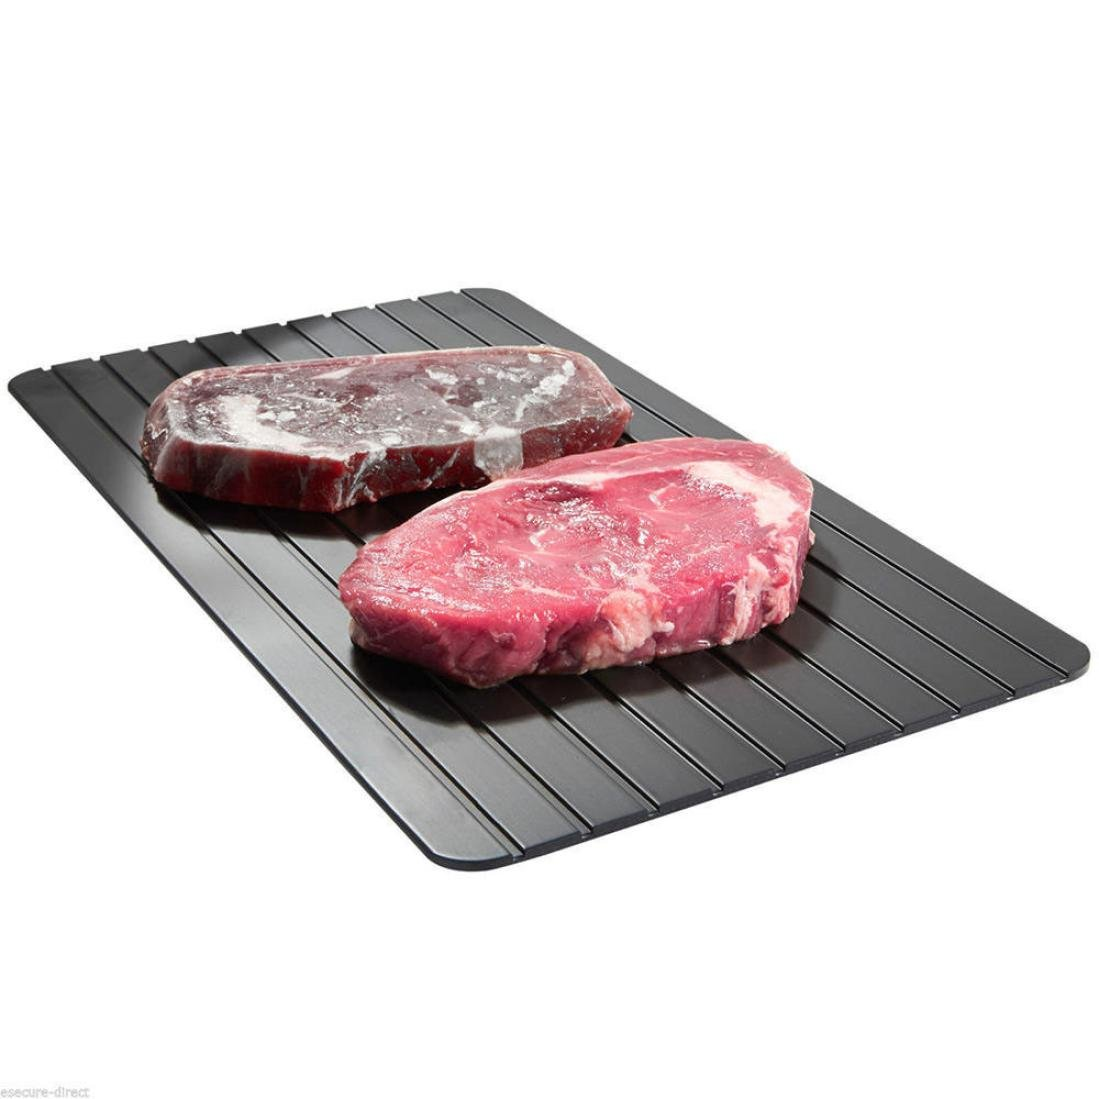 Hohaski Fast Defrosting Tray for Frozen Food- The Safest Way to Defrost Meat or Frozen Food Quickly- without Electricity Microwave Hot Water or Any Other Tools